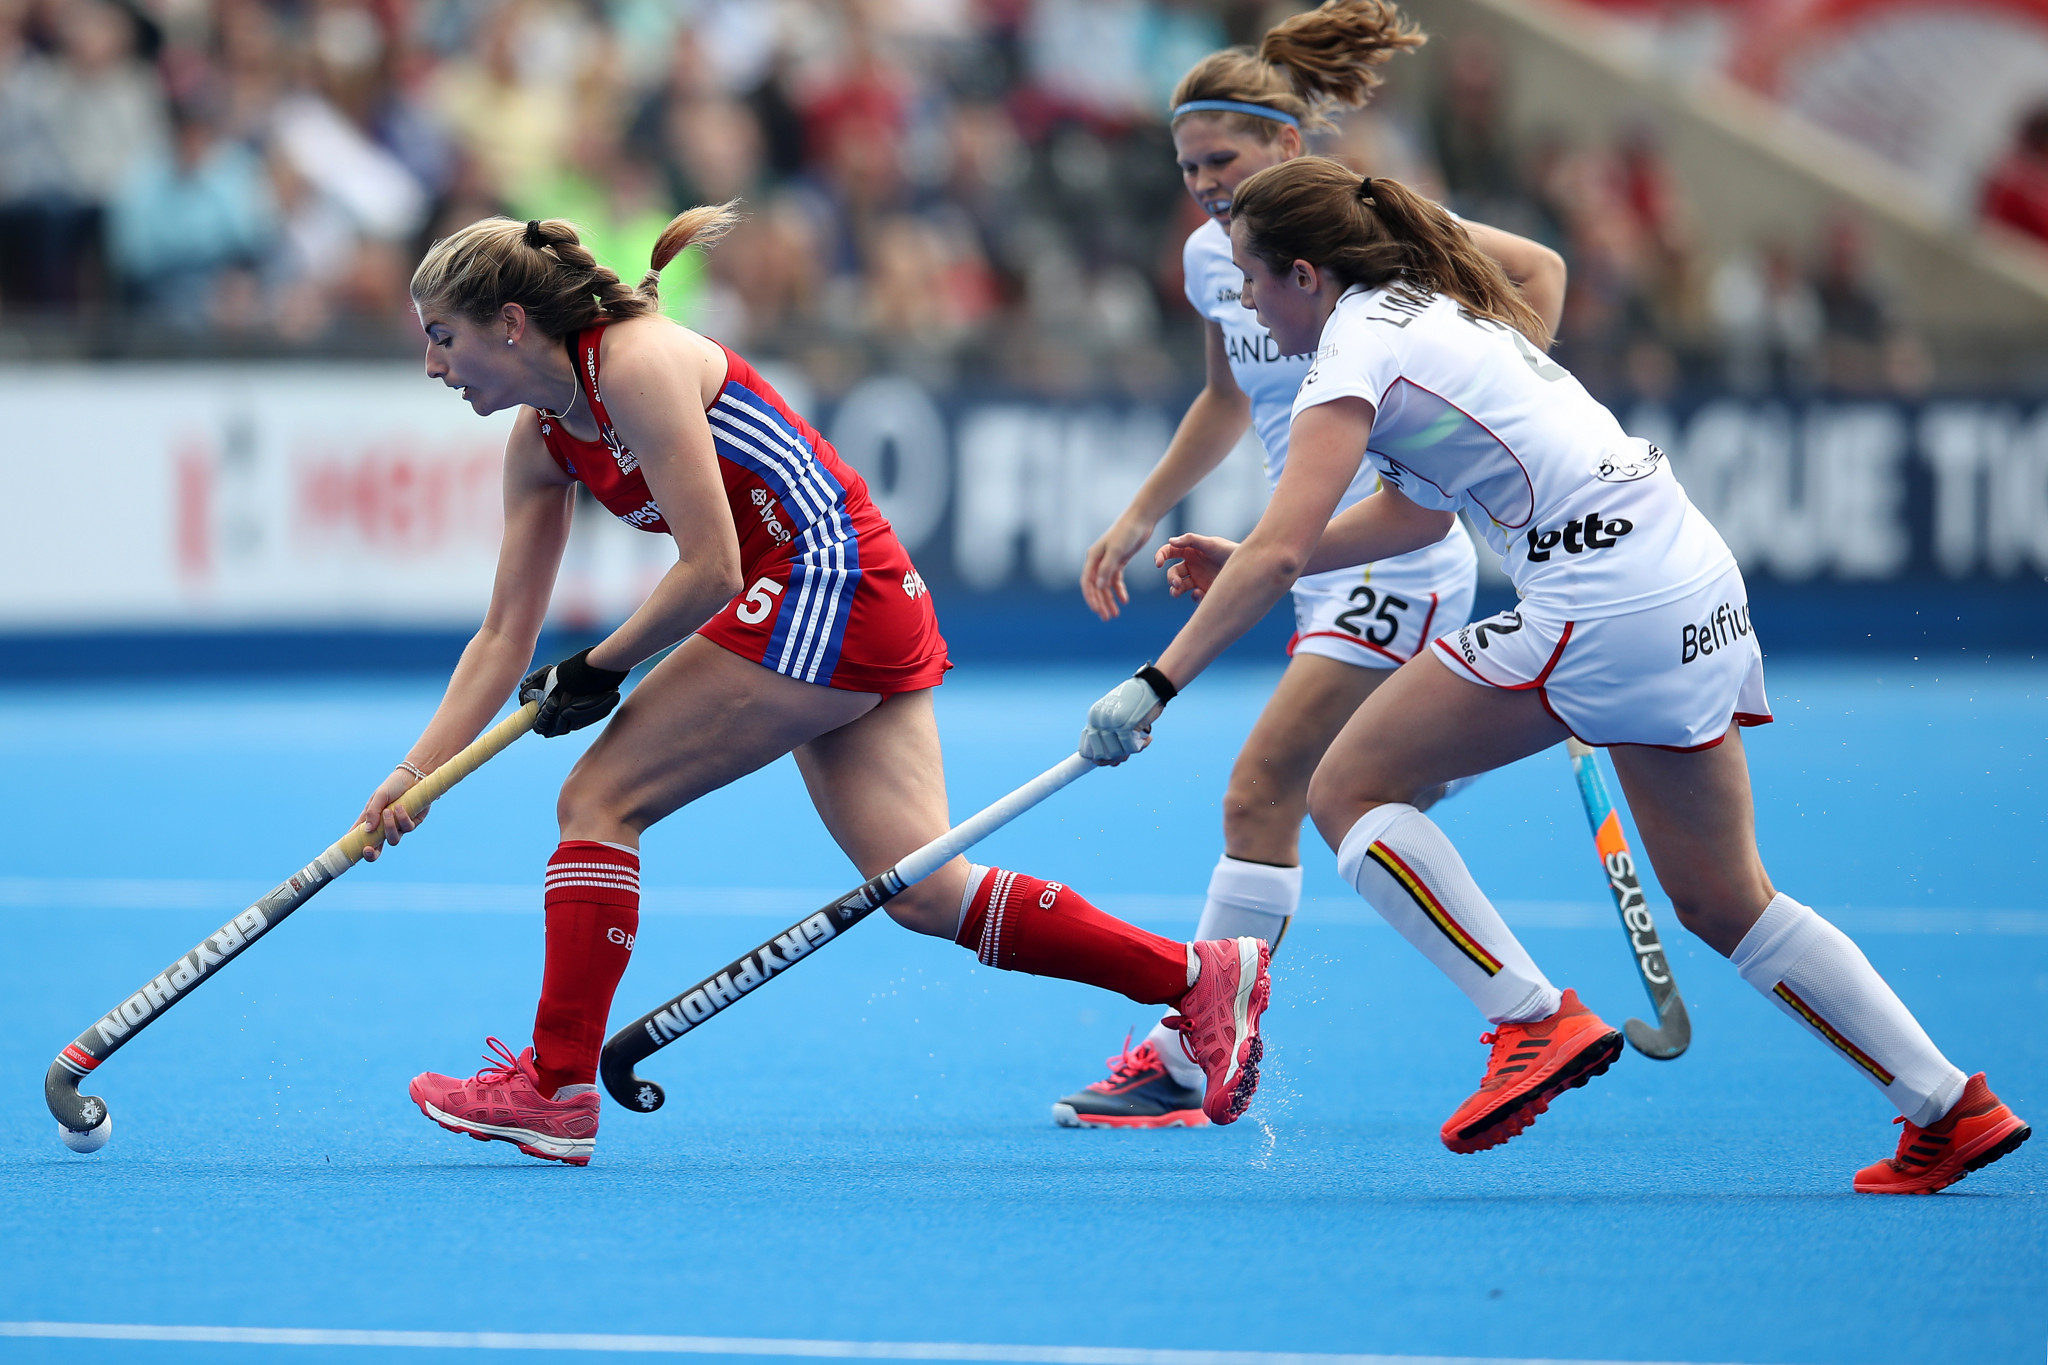 FIH creates Women in Sports Committee